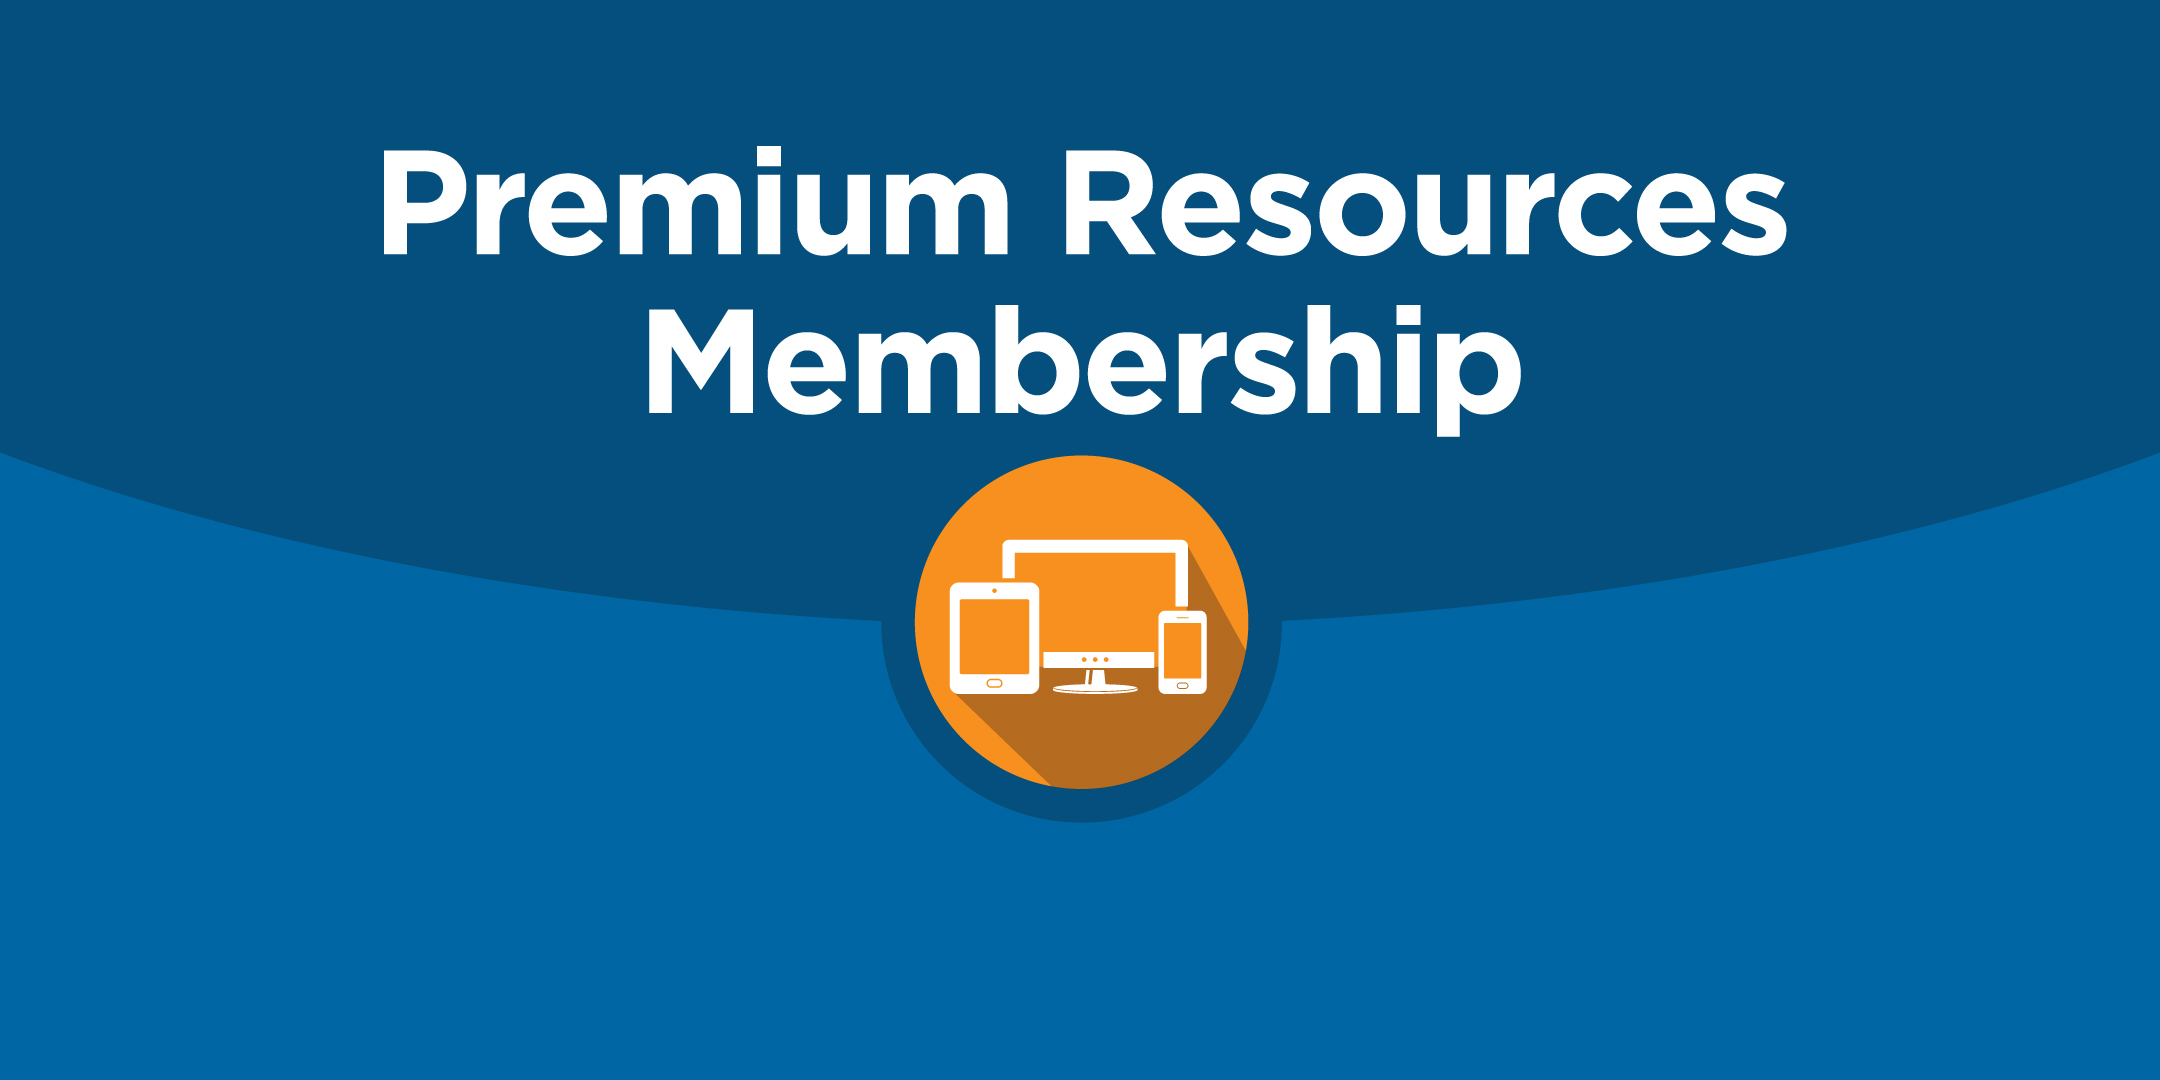 Premium Resources Membership